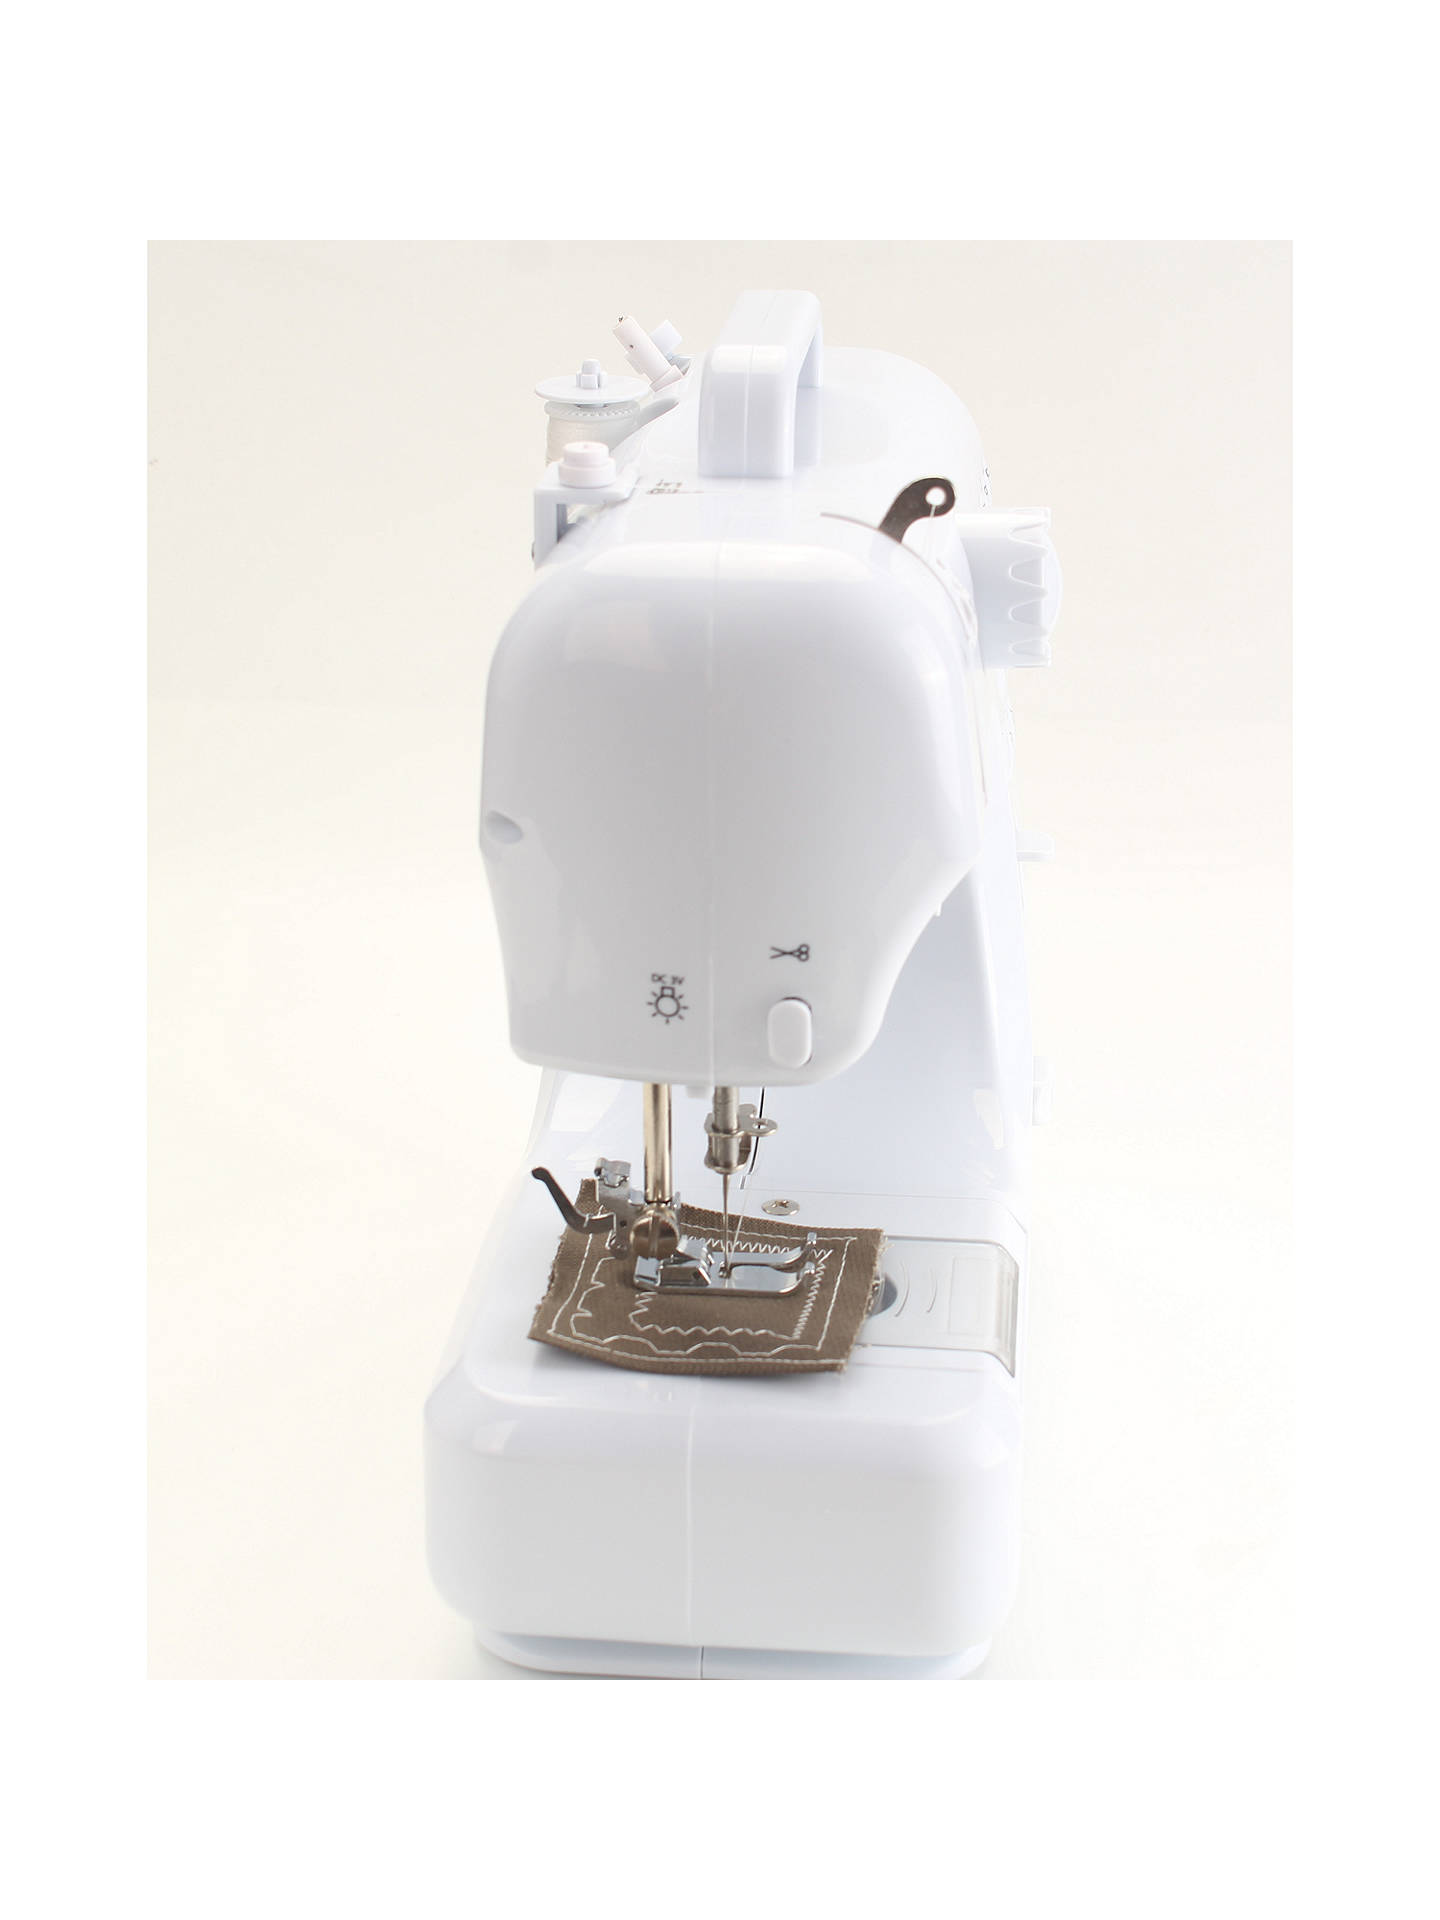 BuySilver 12 Stitch Mini Sewing Machine, White Online at johnlewis.com